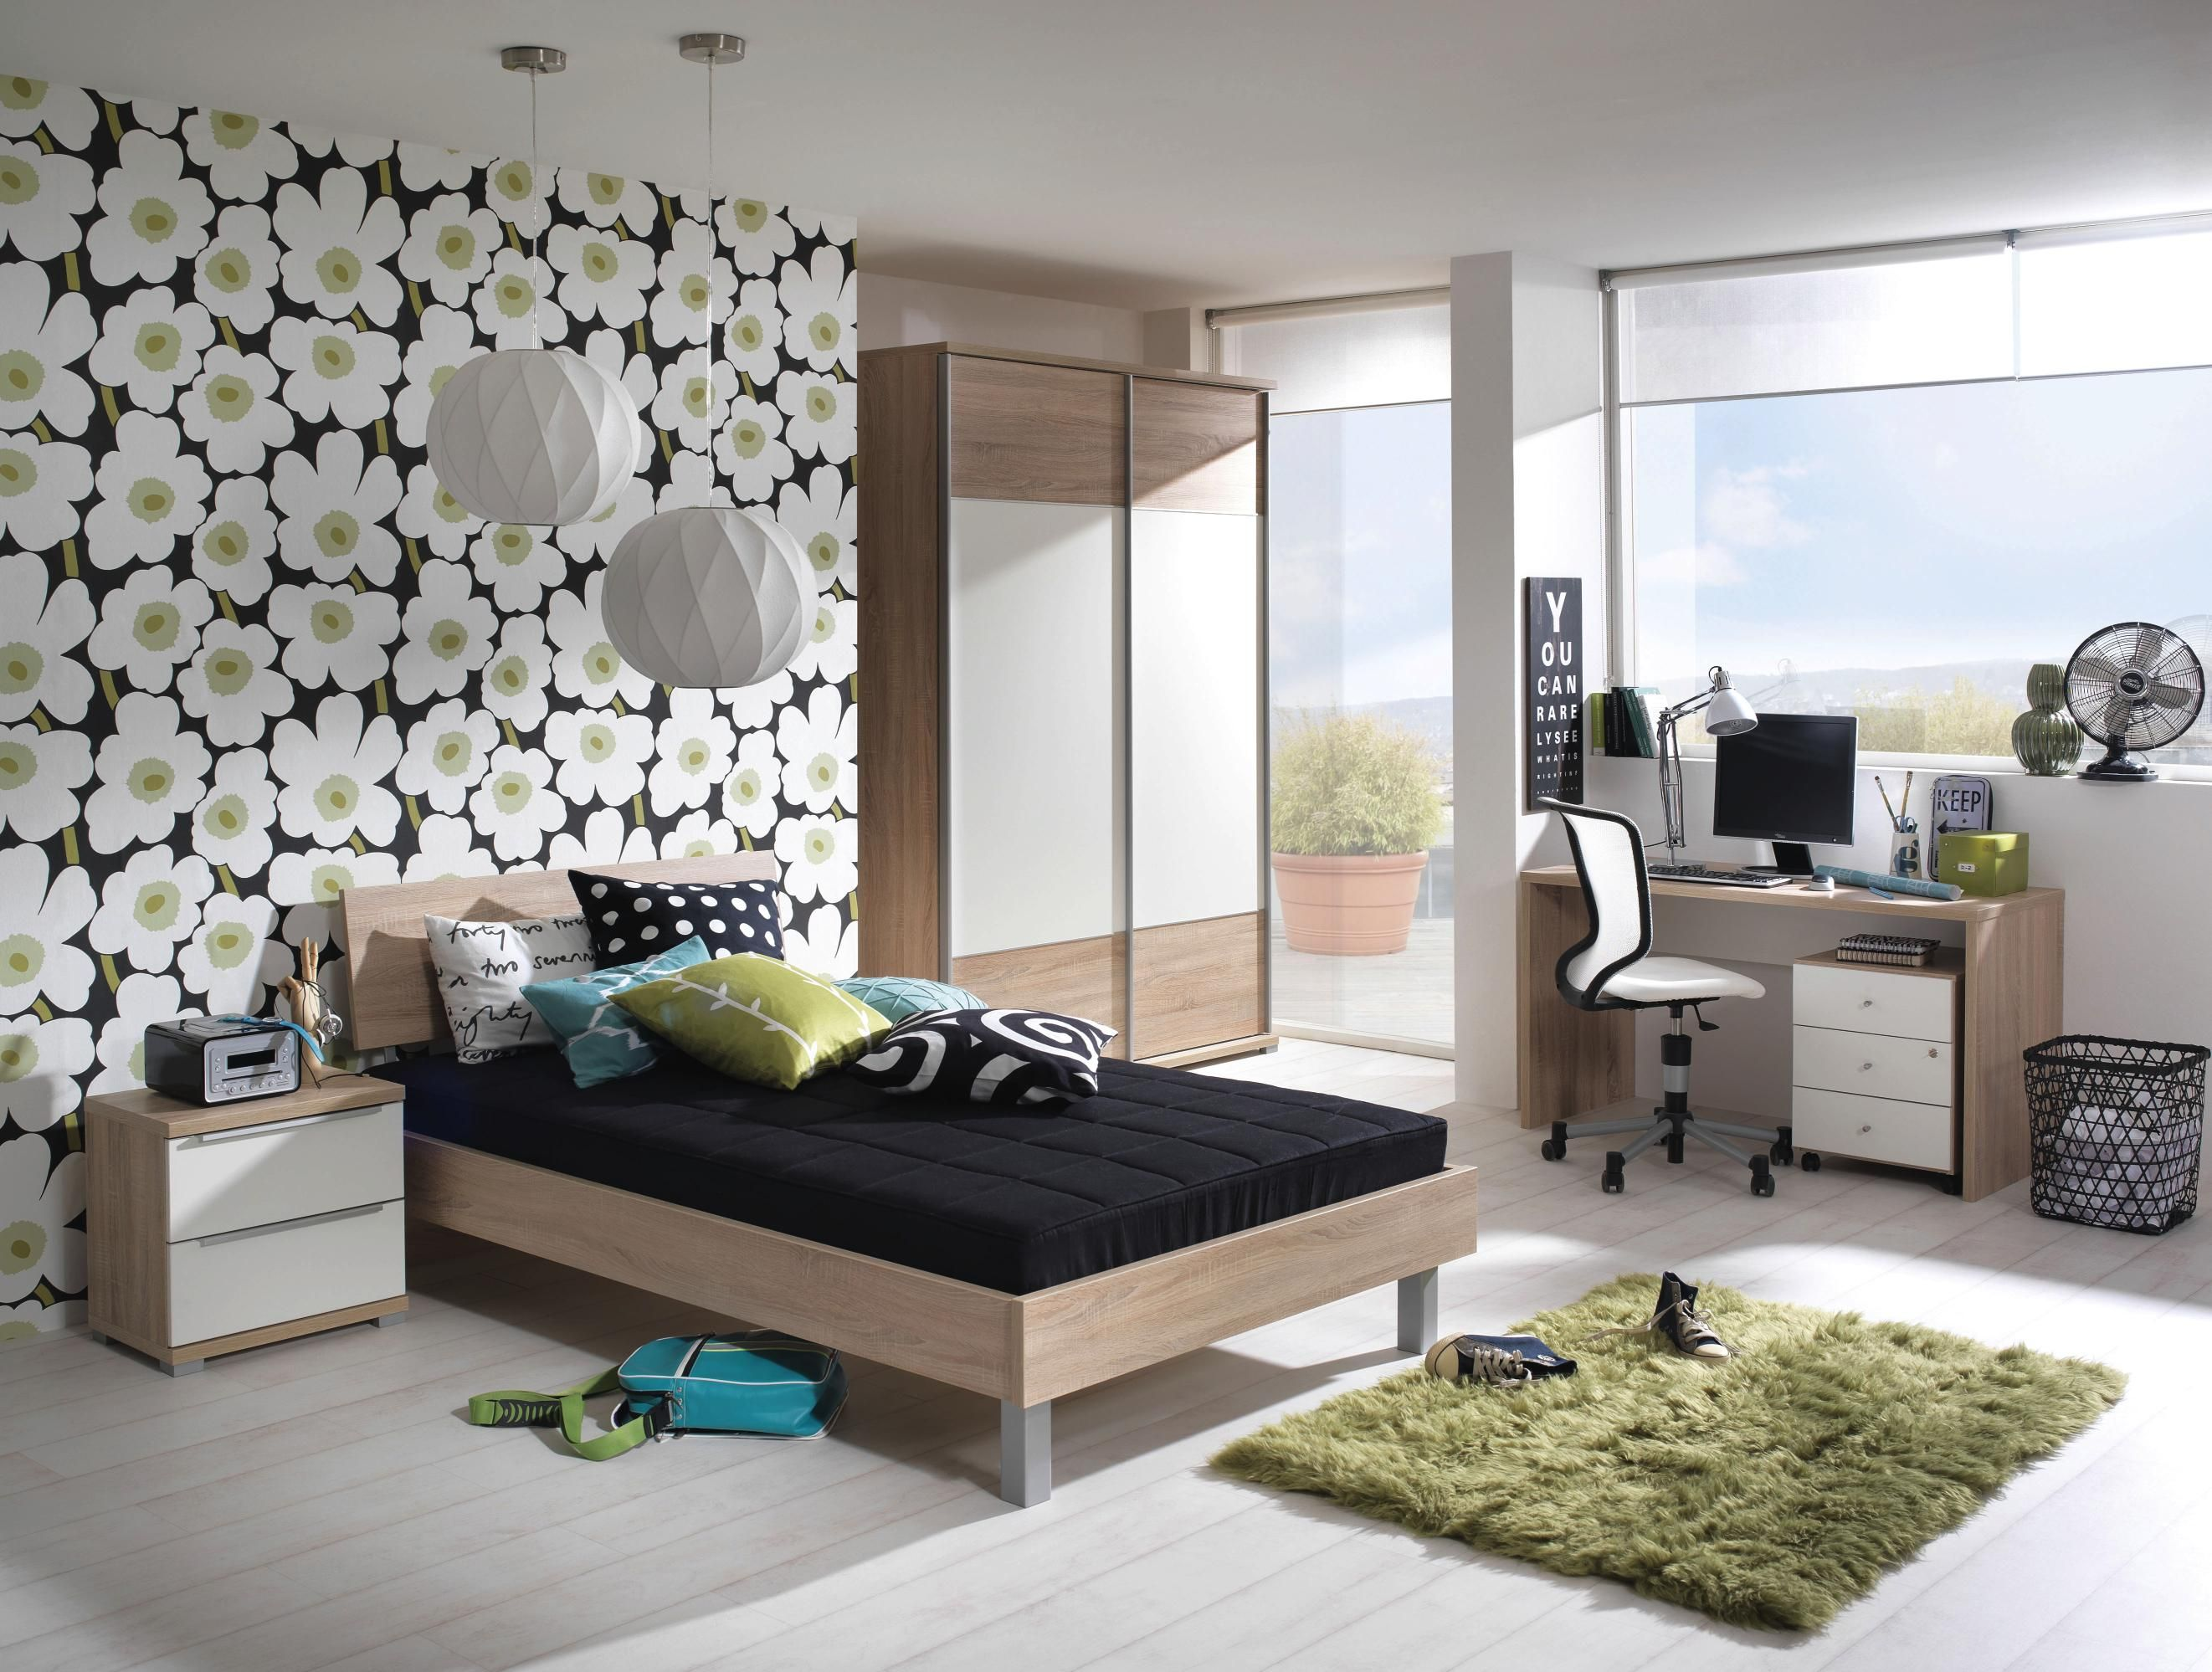 welnova jugendzimmer die angesagte kompletteinrichtung kinder und jugendzimmer pinterest. Black Bedroom Furniture Sets. Home Design Ideas